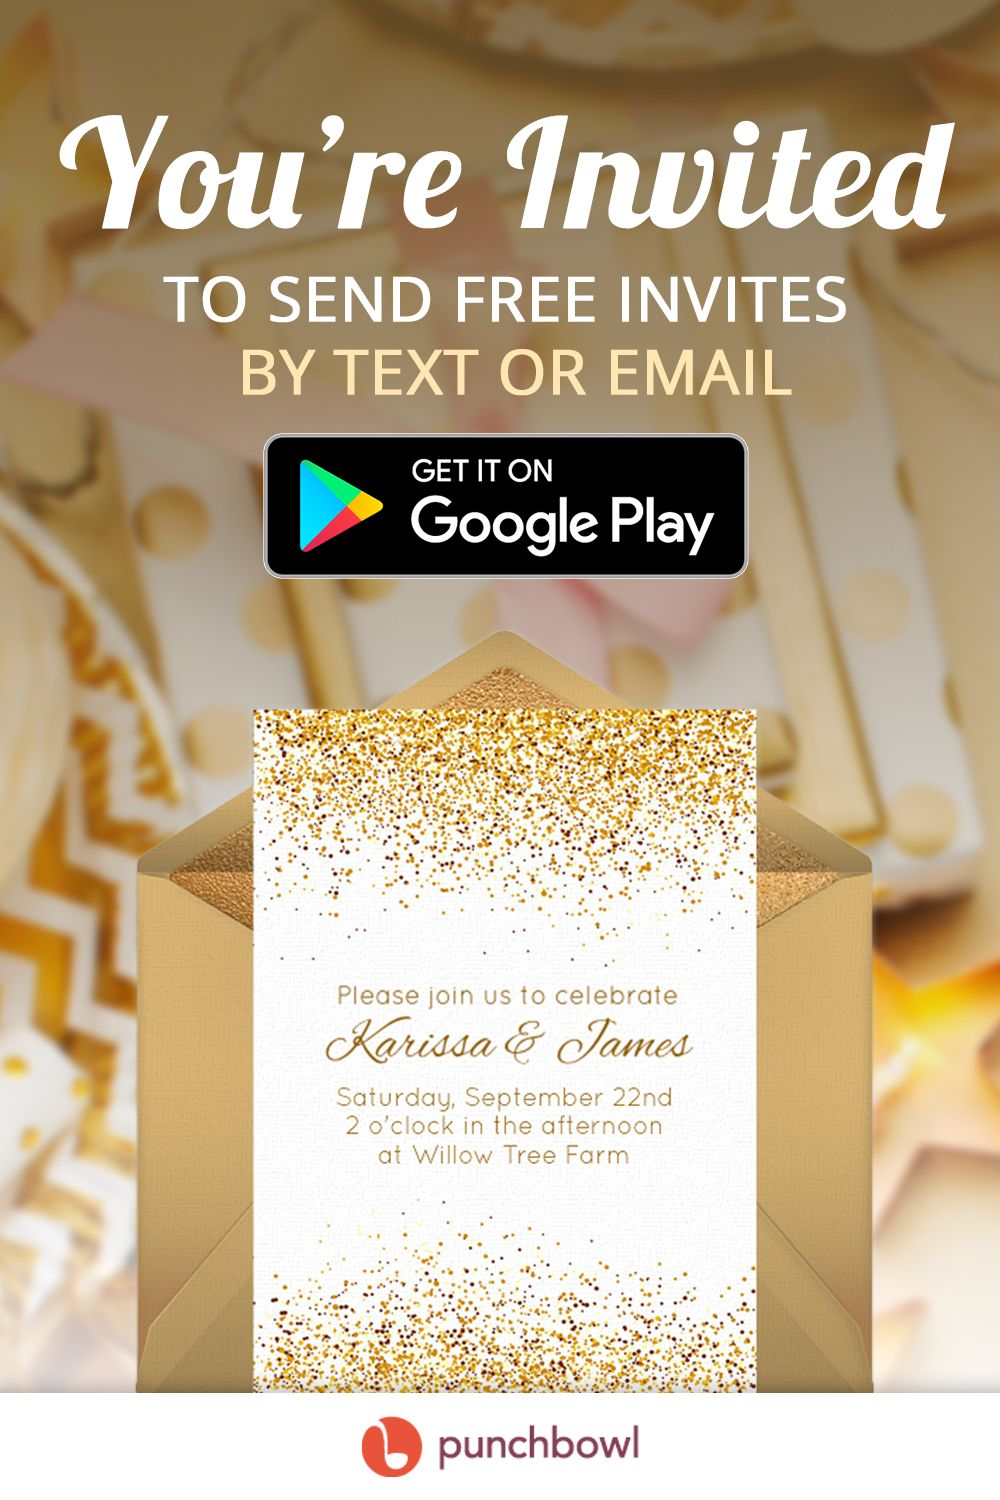 Free Engagement Party Invitations Engagement Party Invitations Bday Party Invitations Party Invitations